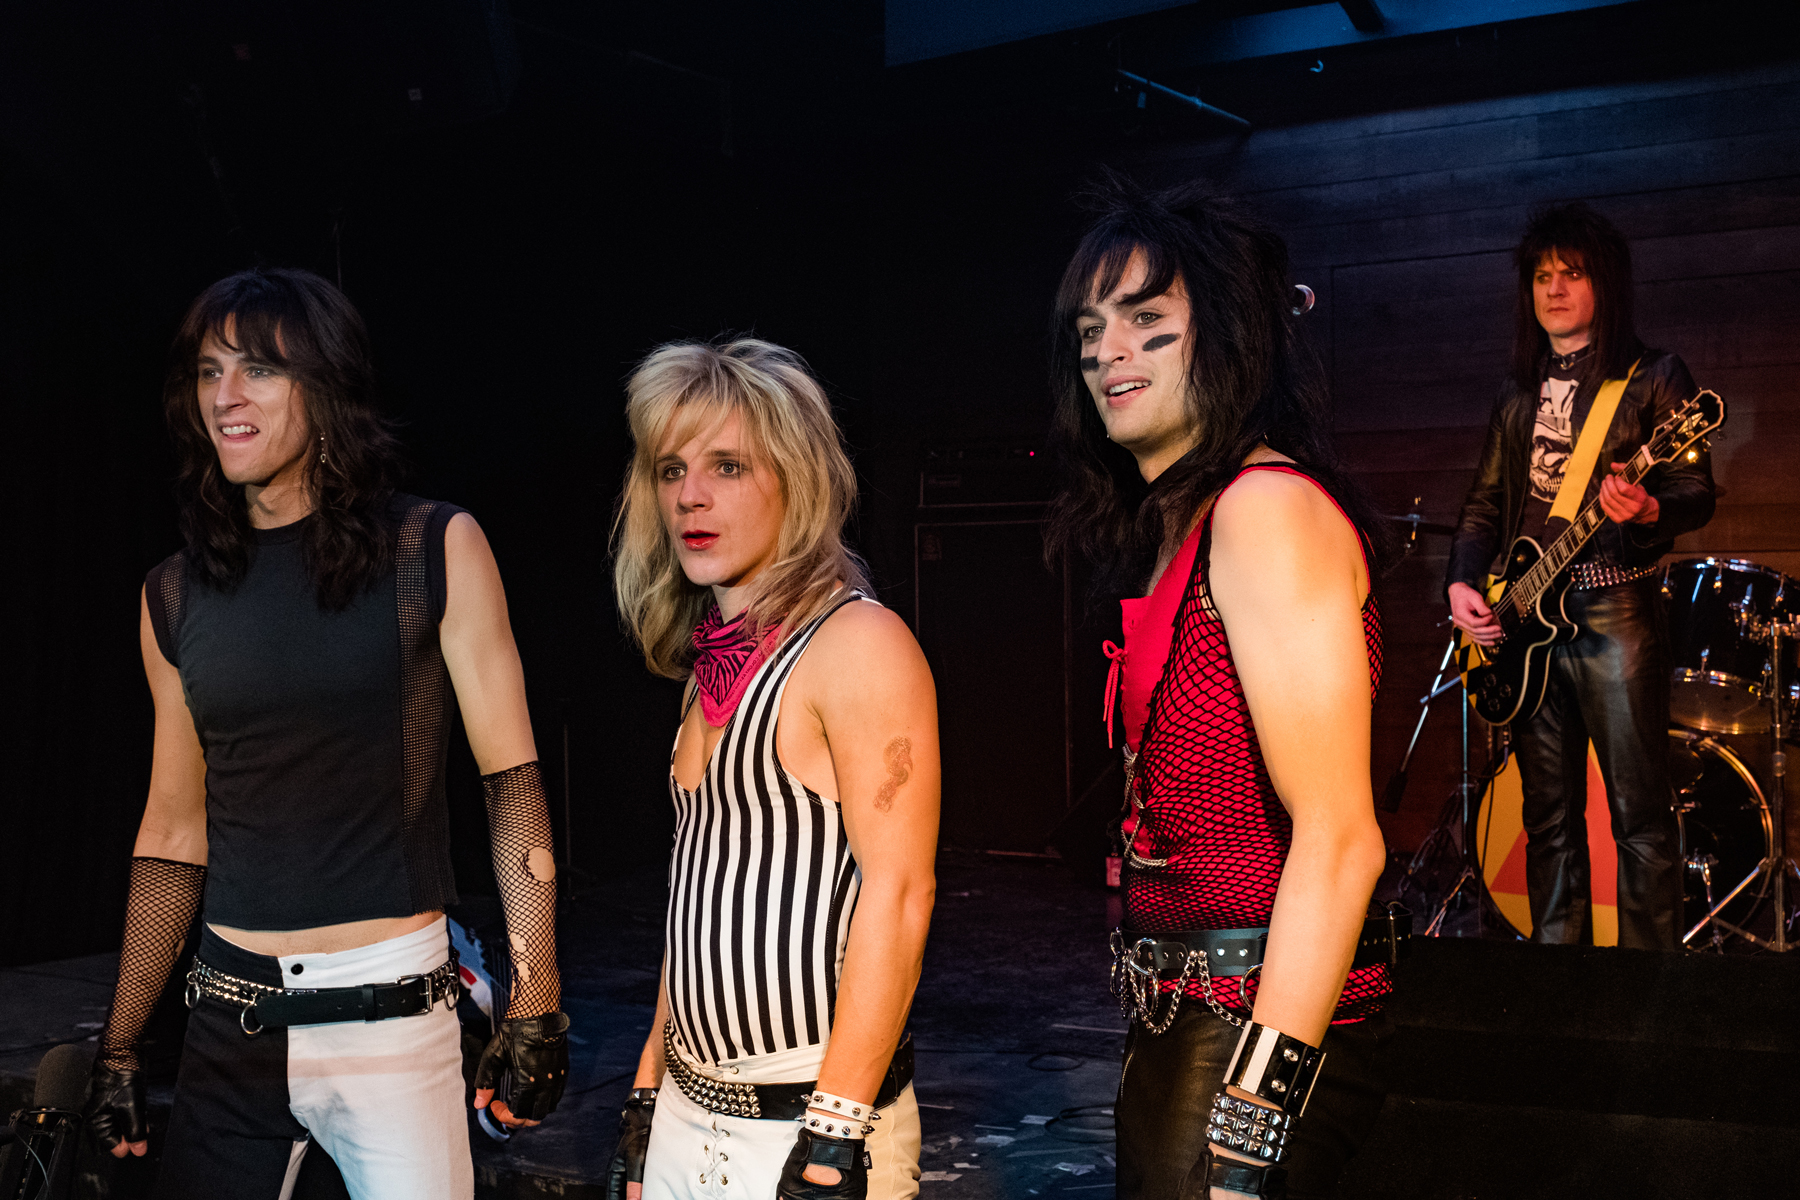 Fact-Checking Mötley Crüe's Netflix Movie 'The Dirt'